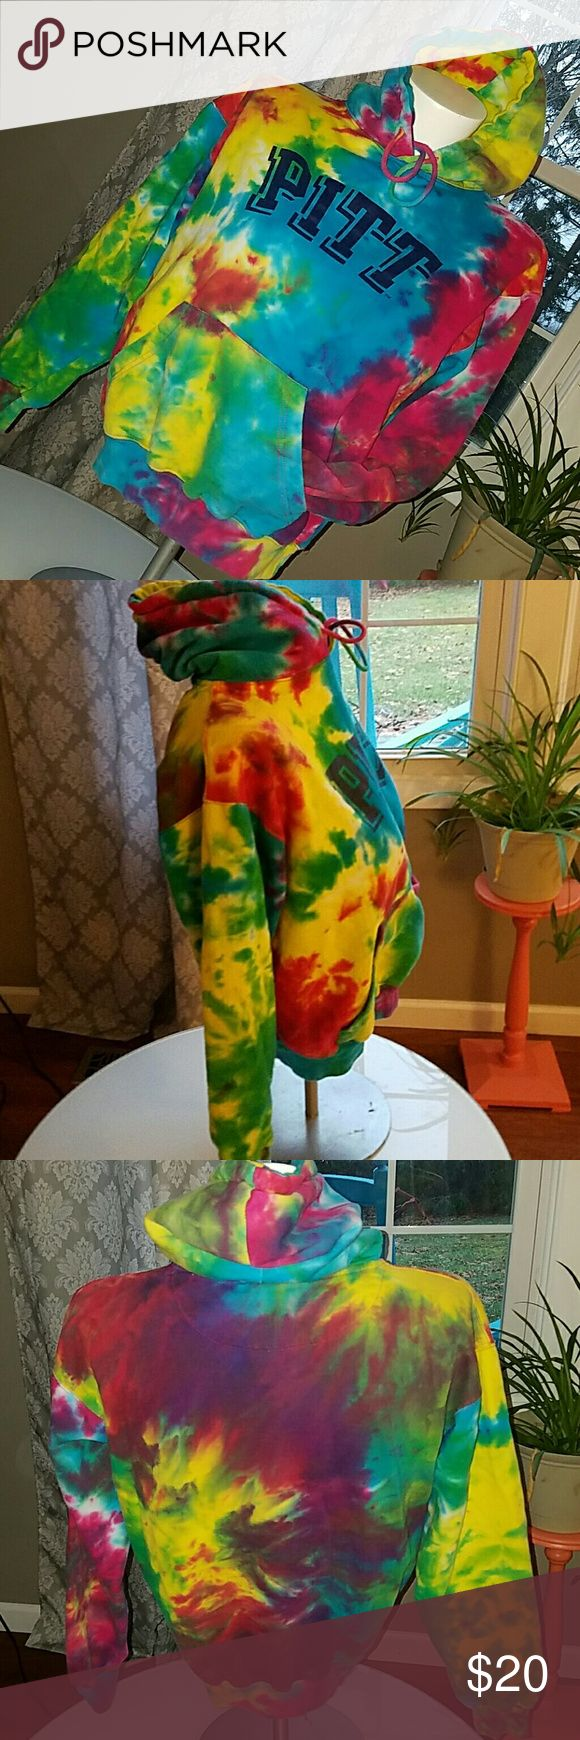 TiE dye Hoodie from  Pittsburg College. Mint condition. Very groovy! Very colorful!   Pittsburgh College  Size M A Tie Dye Clothing Company Tops Sweatshirts & Hoodies